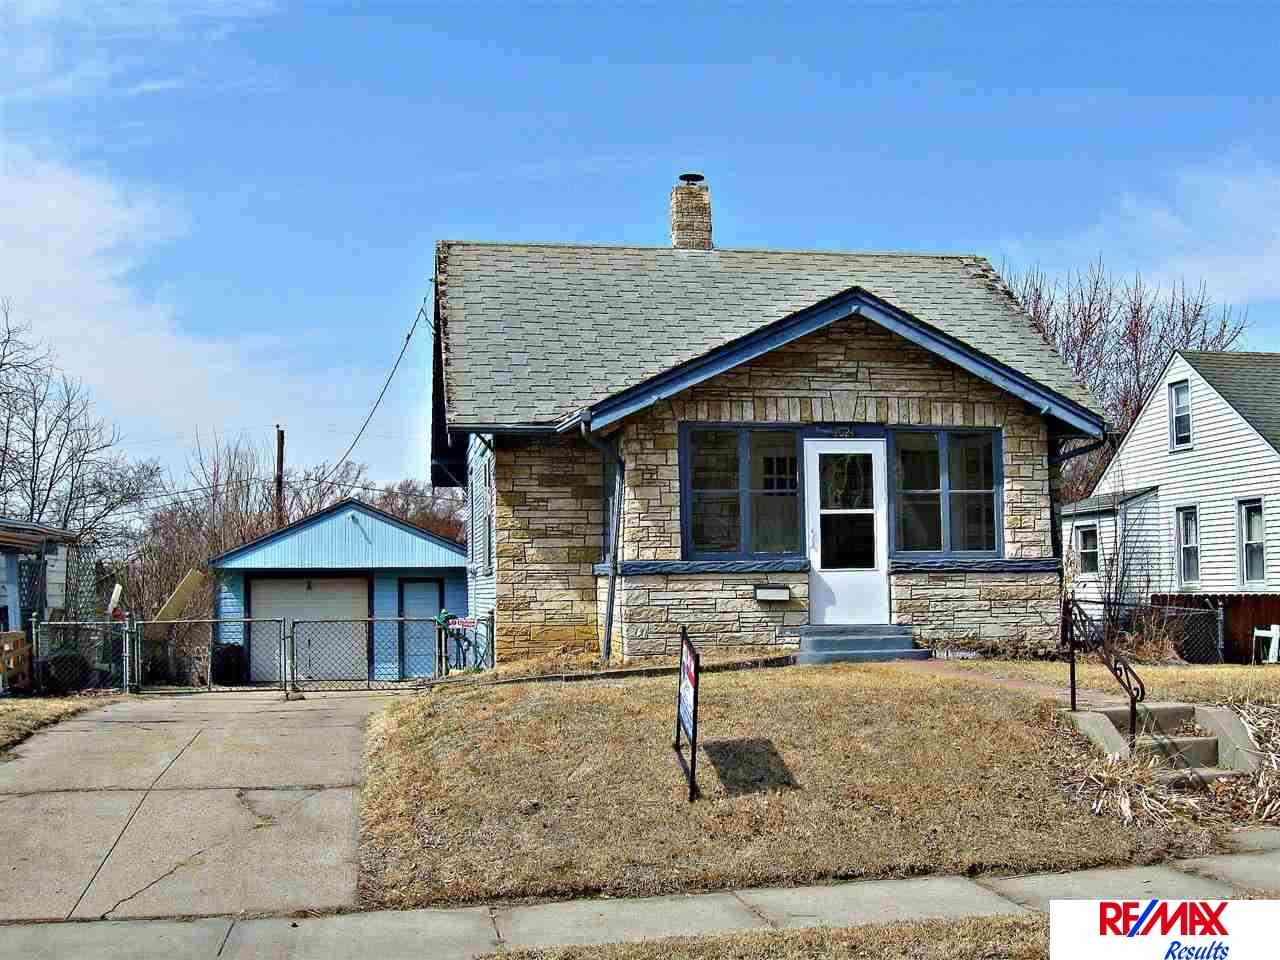 Rental Homes for Rent, ListingId:28501557, location: 2024 N 64 St Omaha 68104